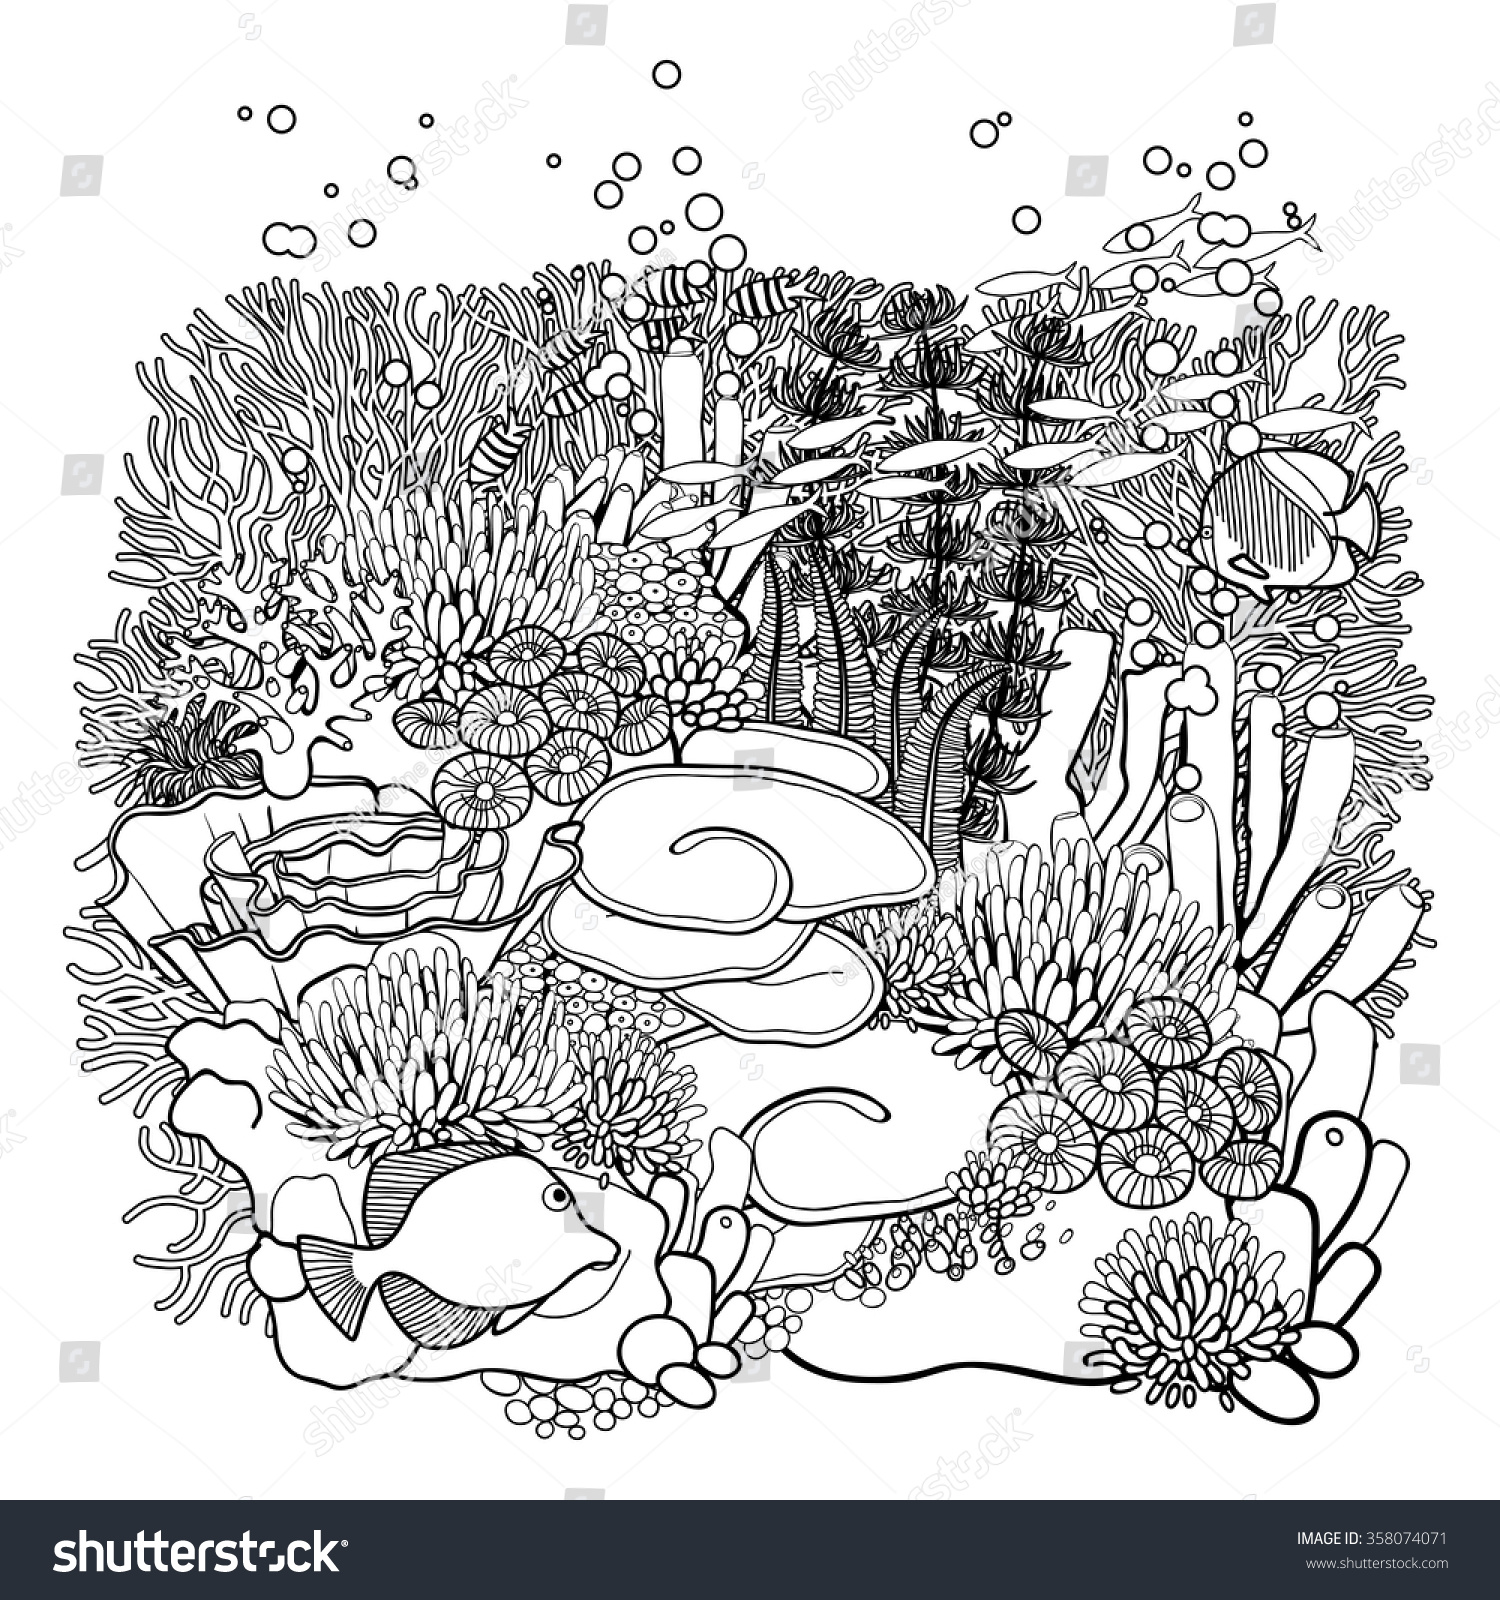 coral reef in line art style ocean plants and rocks isolated on white - Coral Reef Coloring Pages Kids